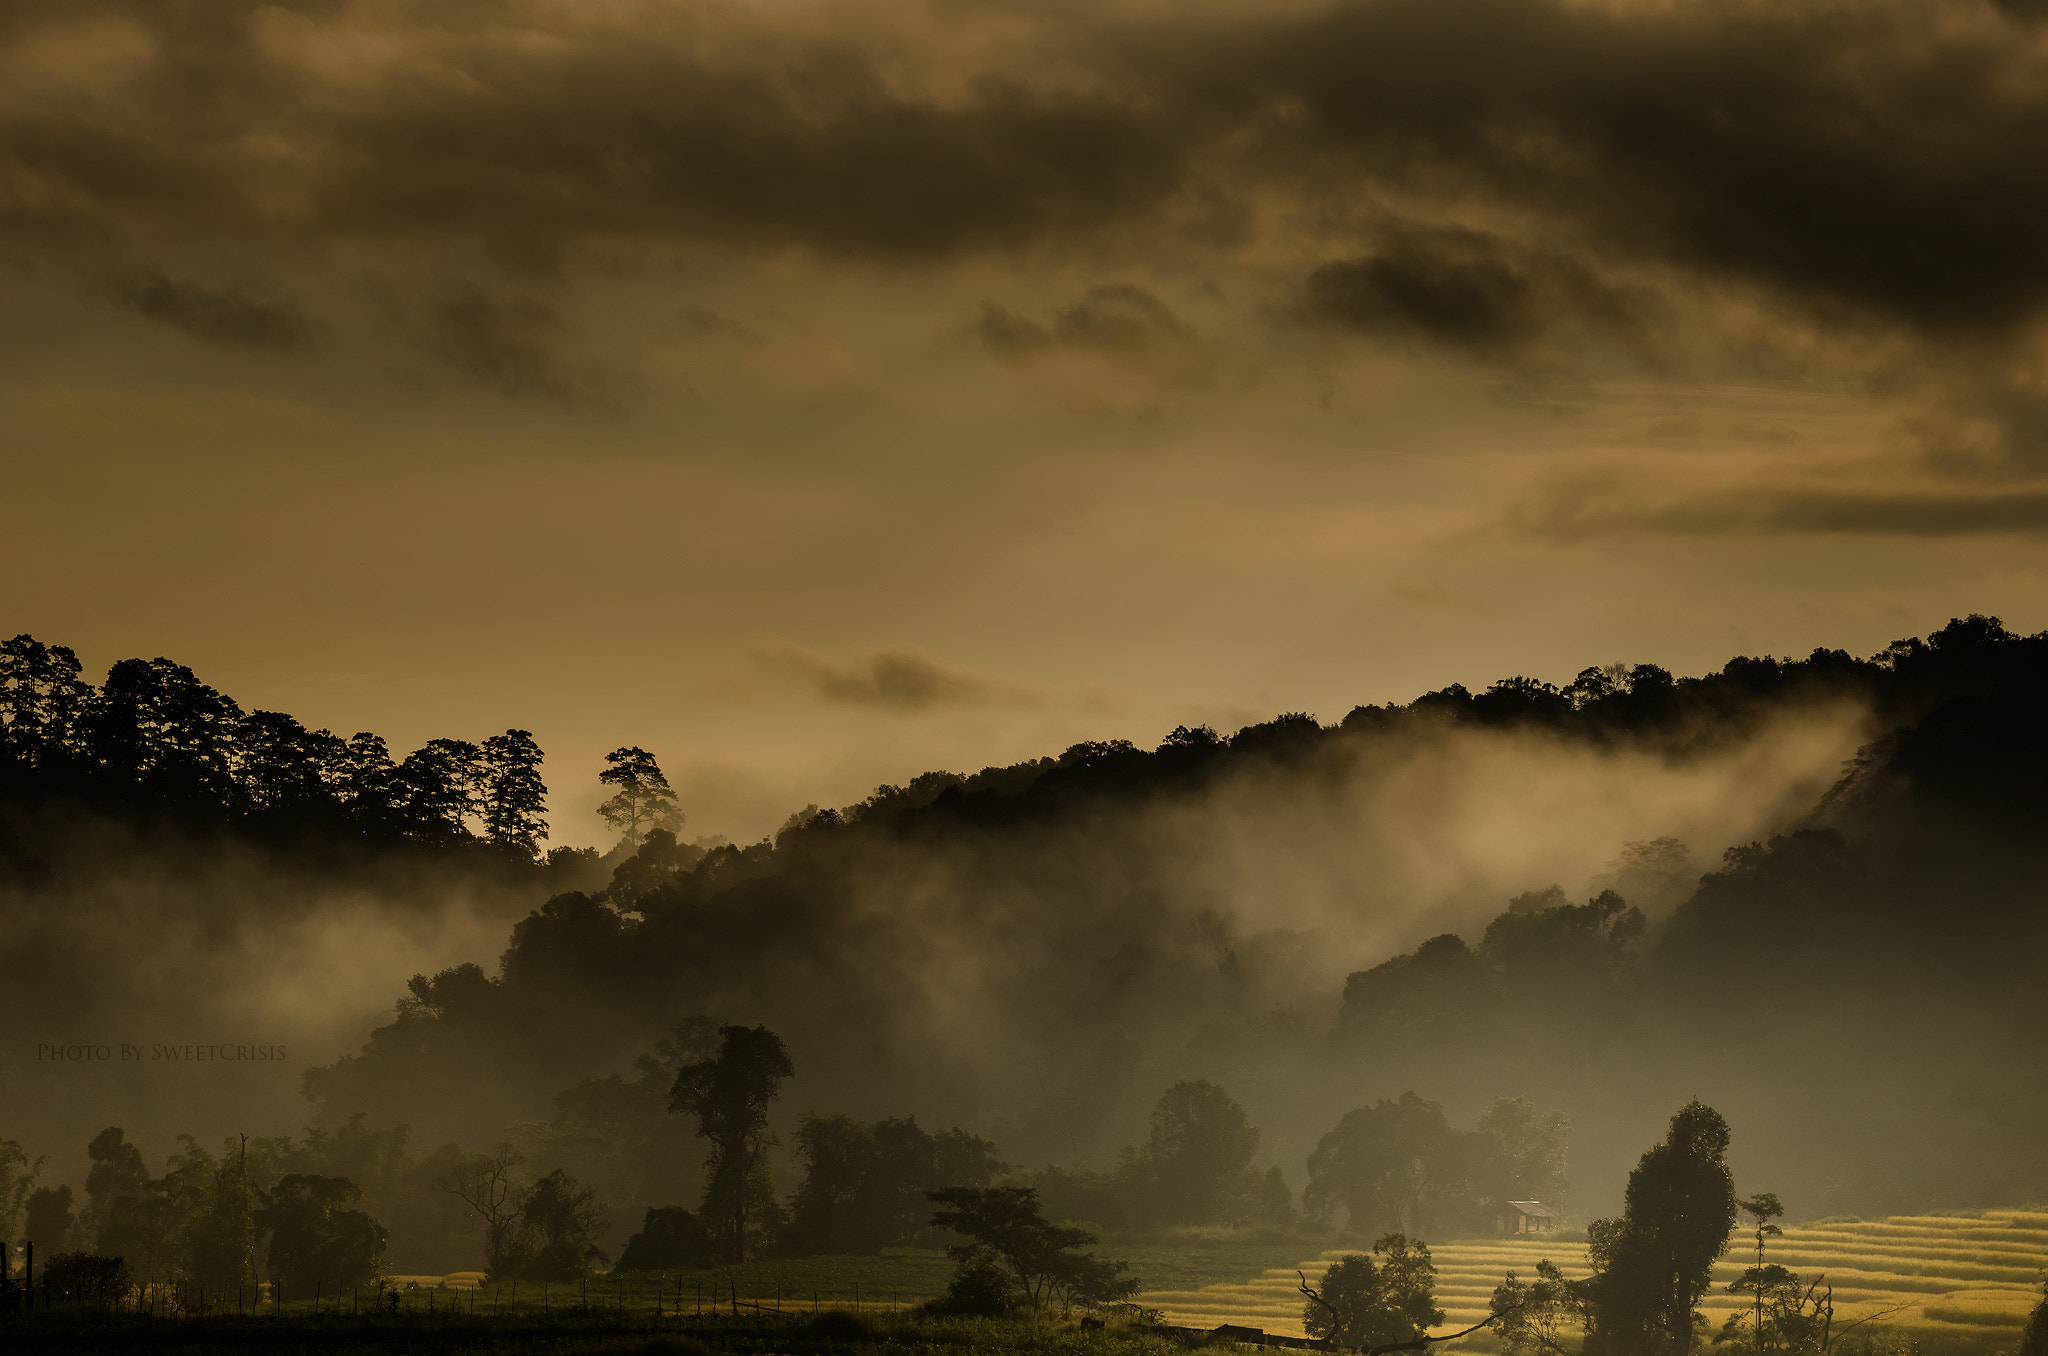 Photograph Morning by Peerasith Chaisanit on 500px